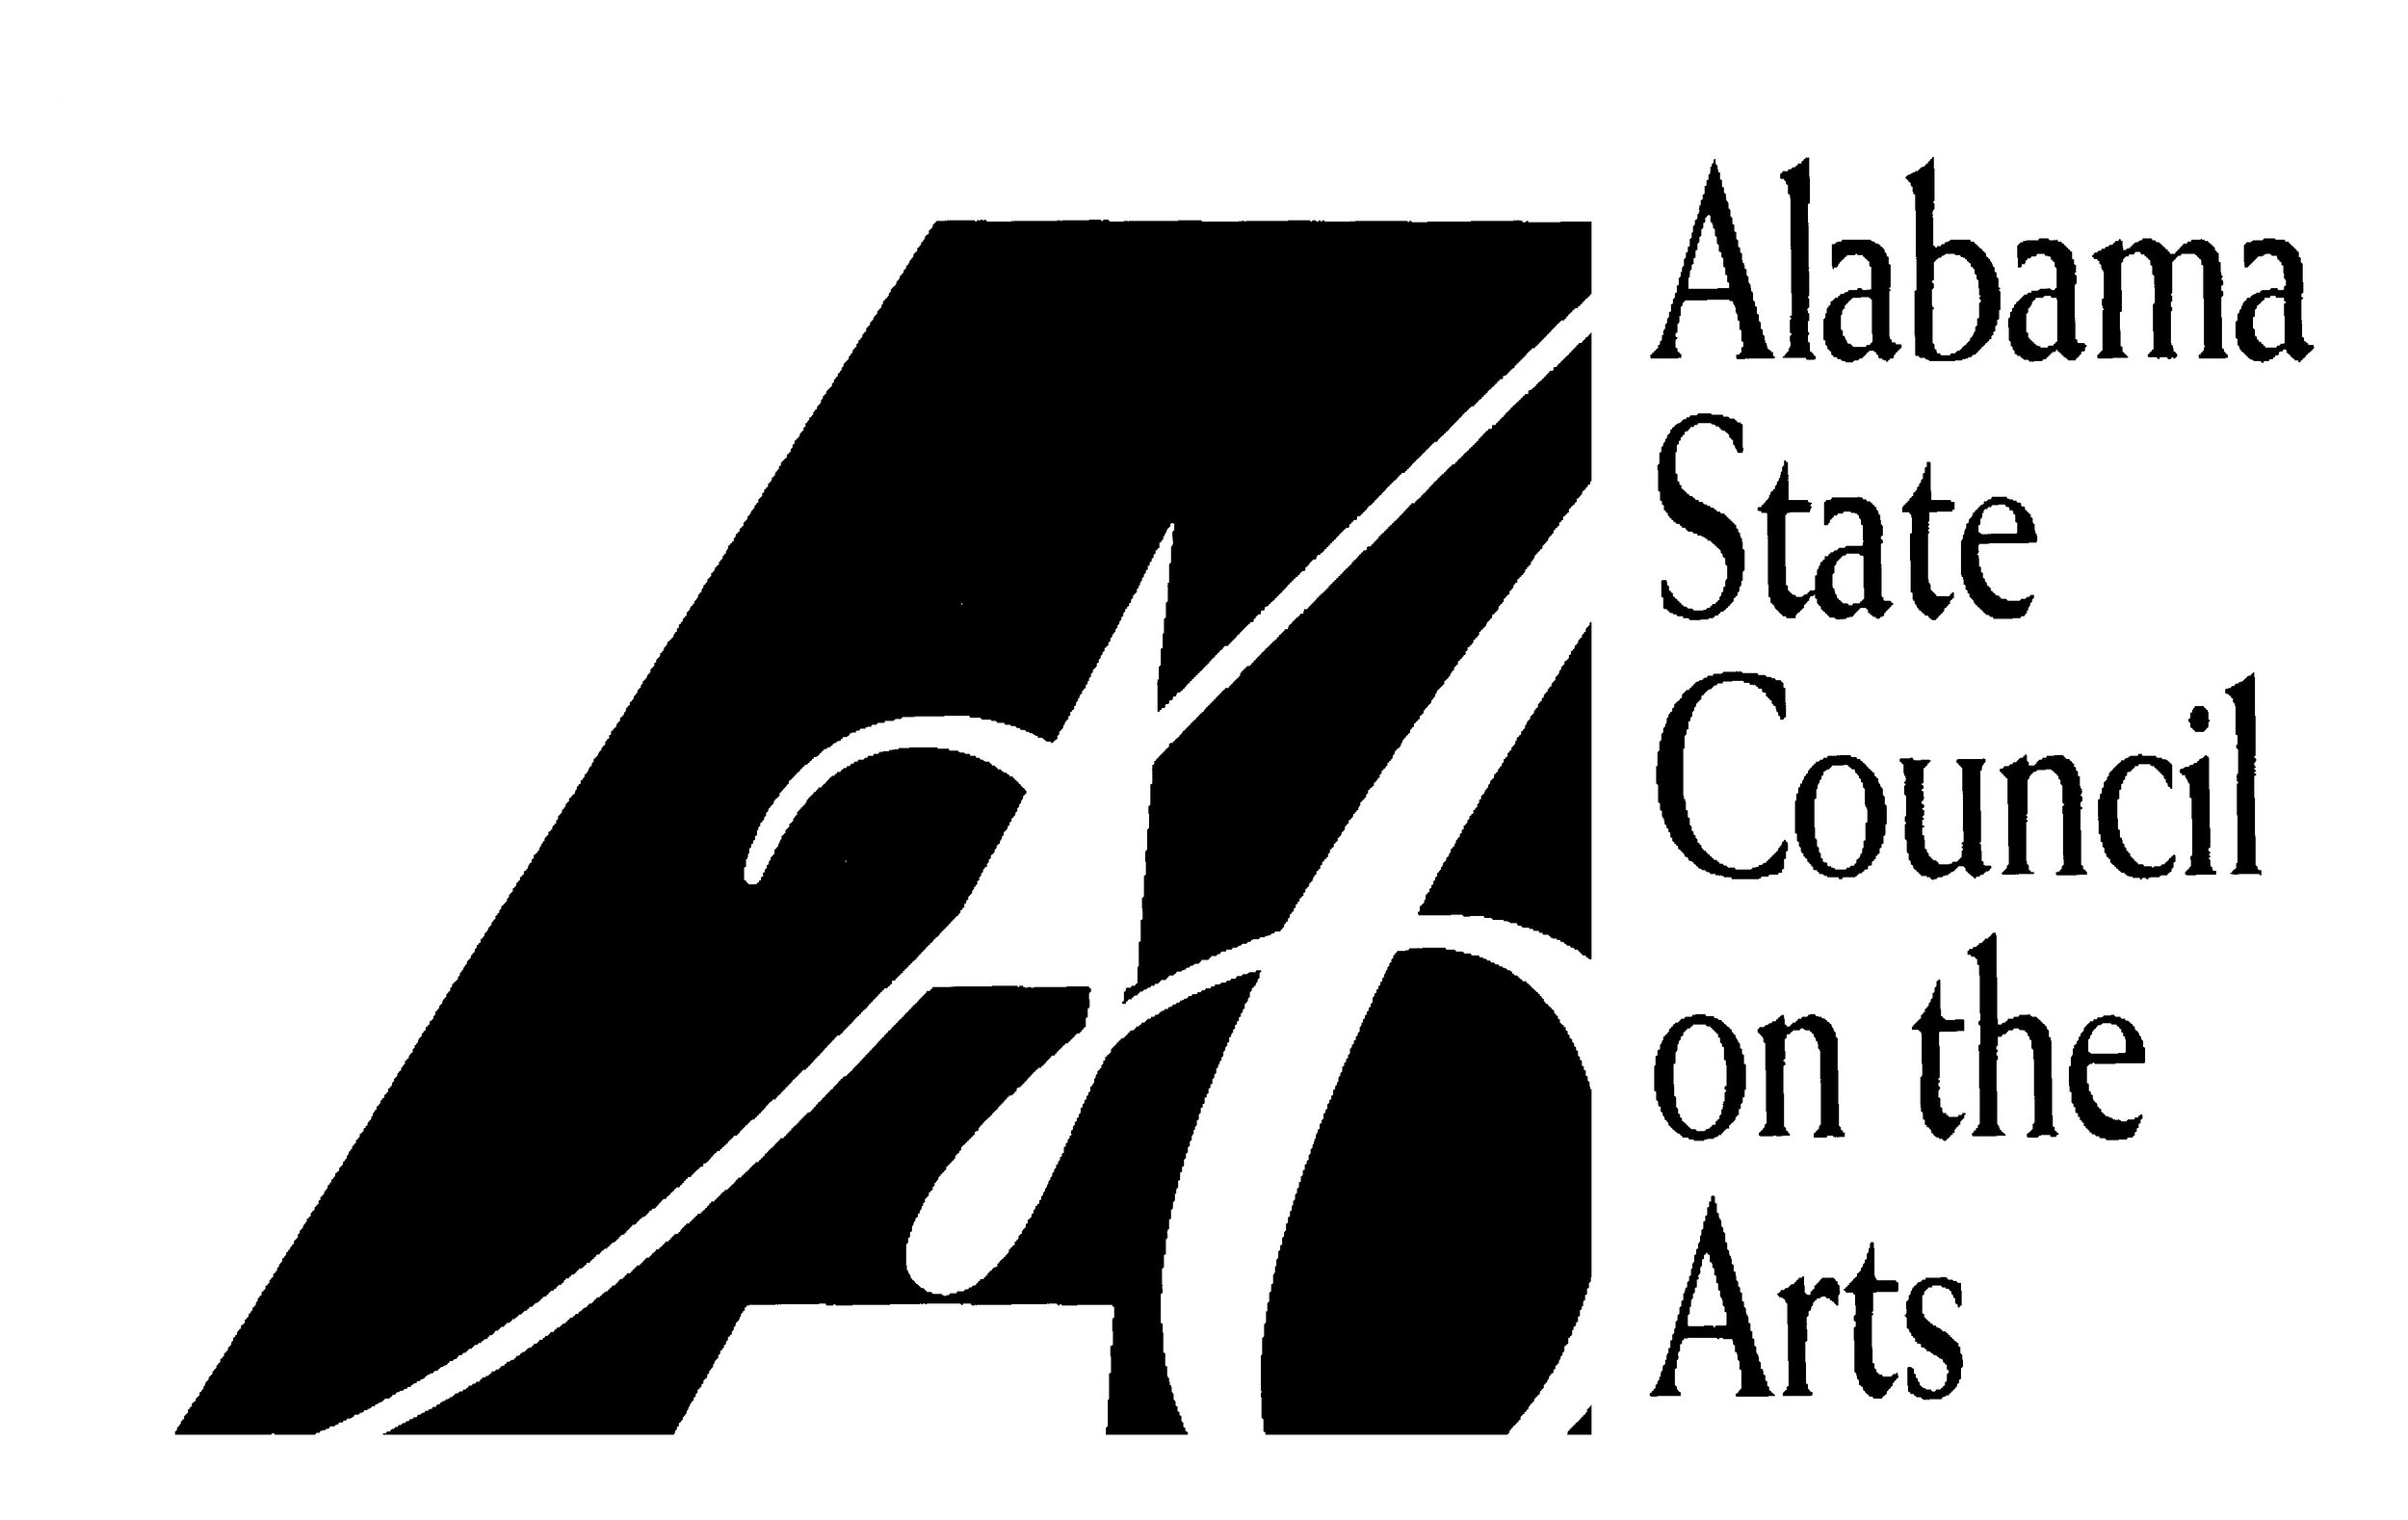 The Alabama State Council on the Arts